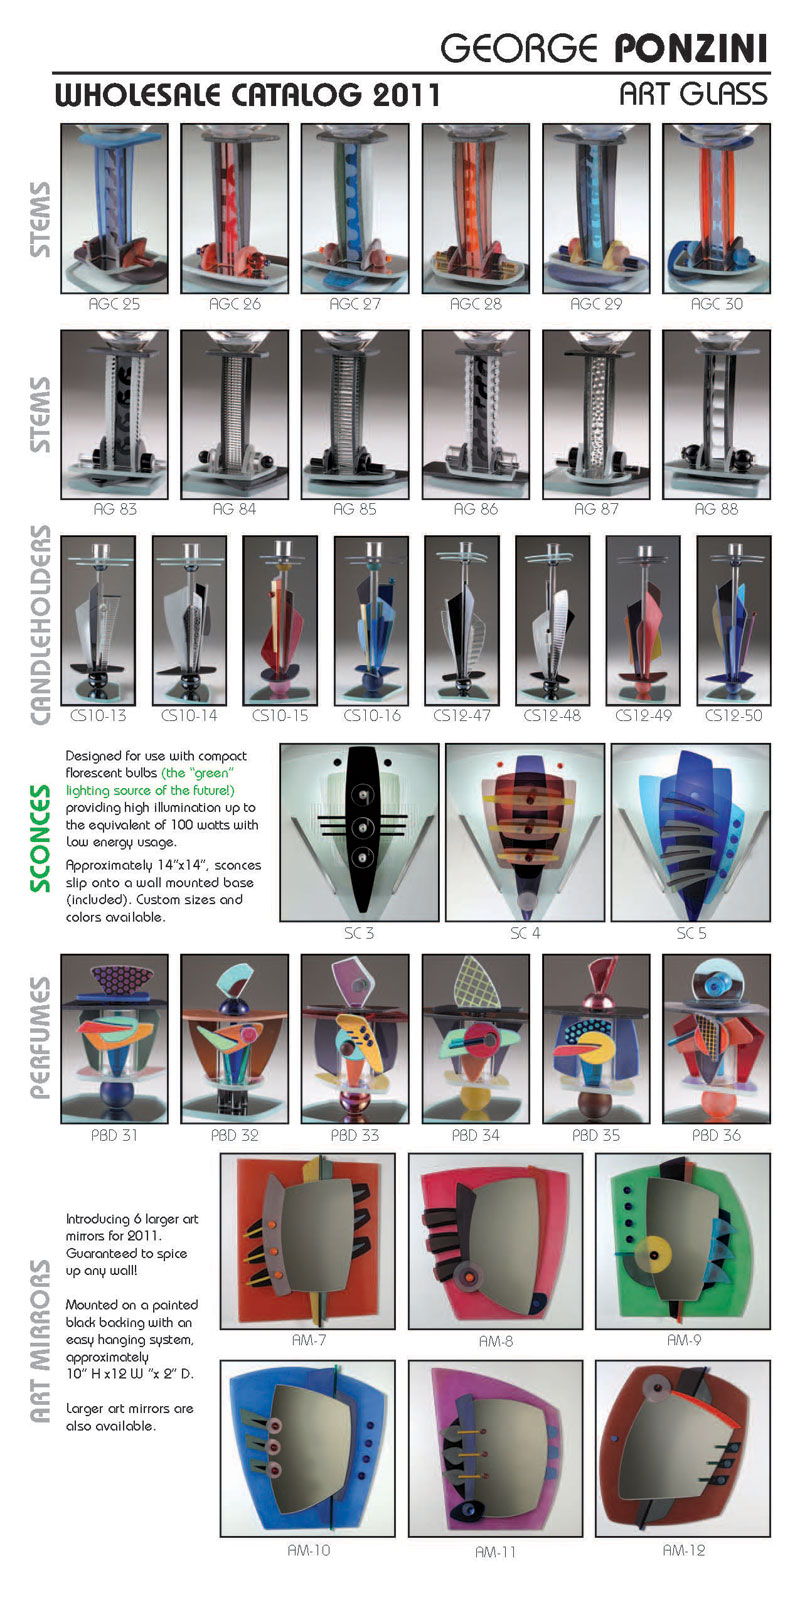 Ponzini Art Glass Catalog 2011 pg 1